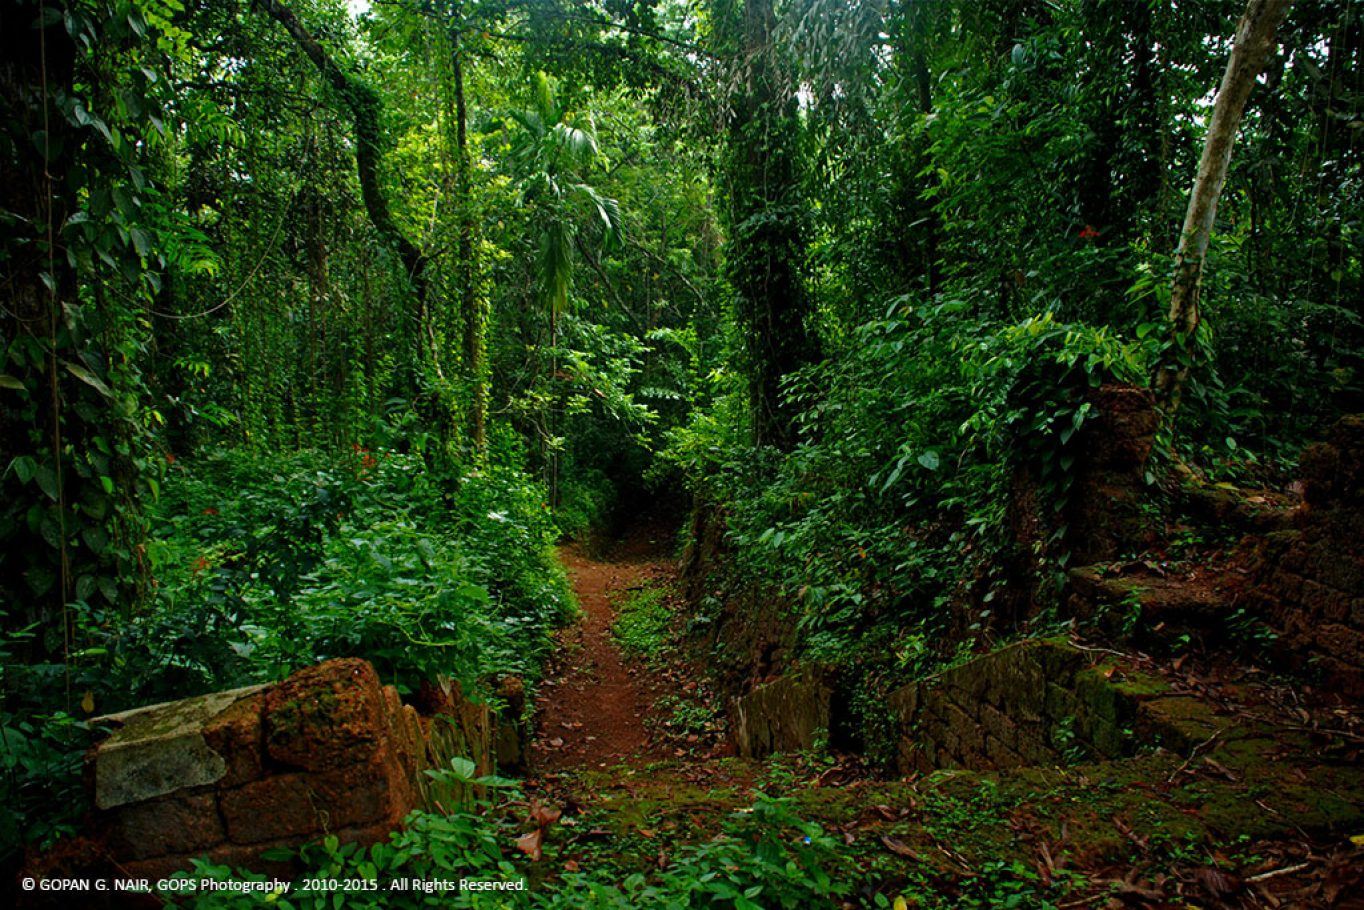 IDAVAZHI or a narrow passage from the villages of Kerala